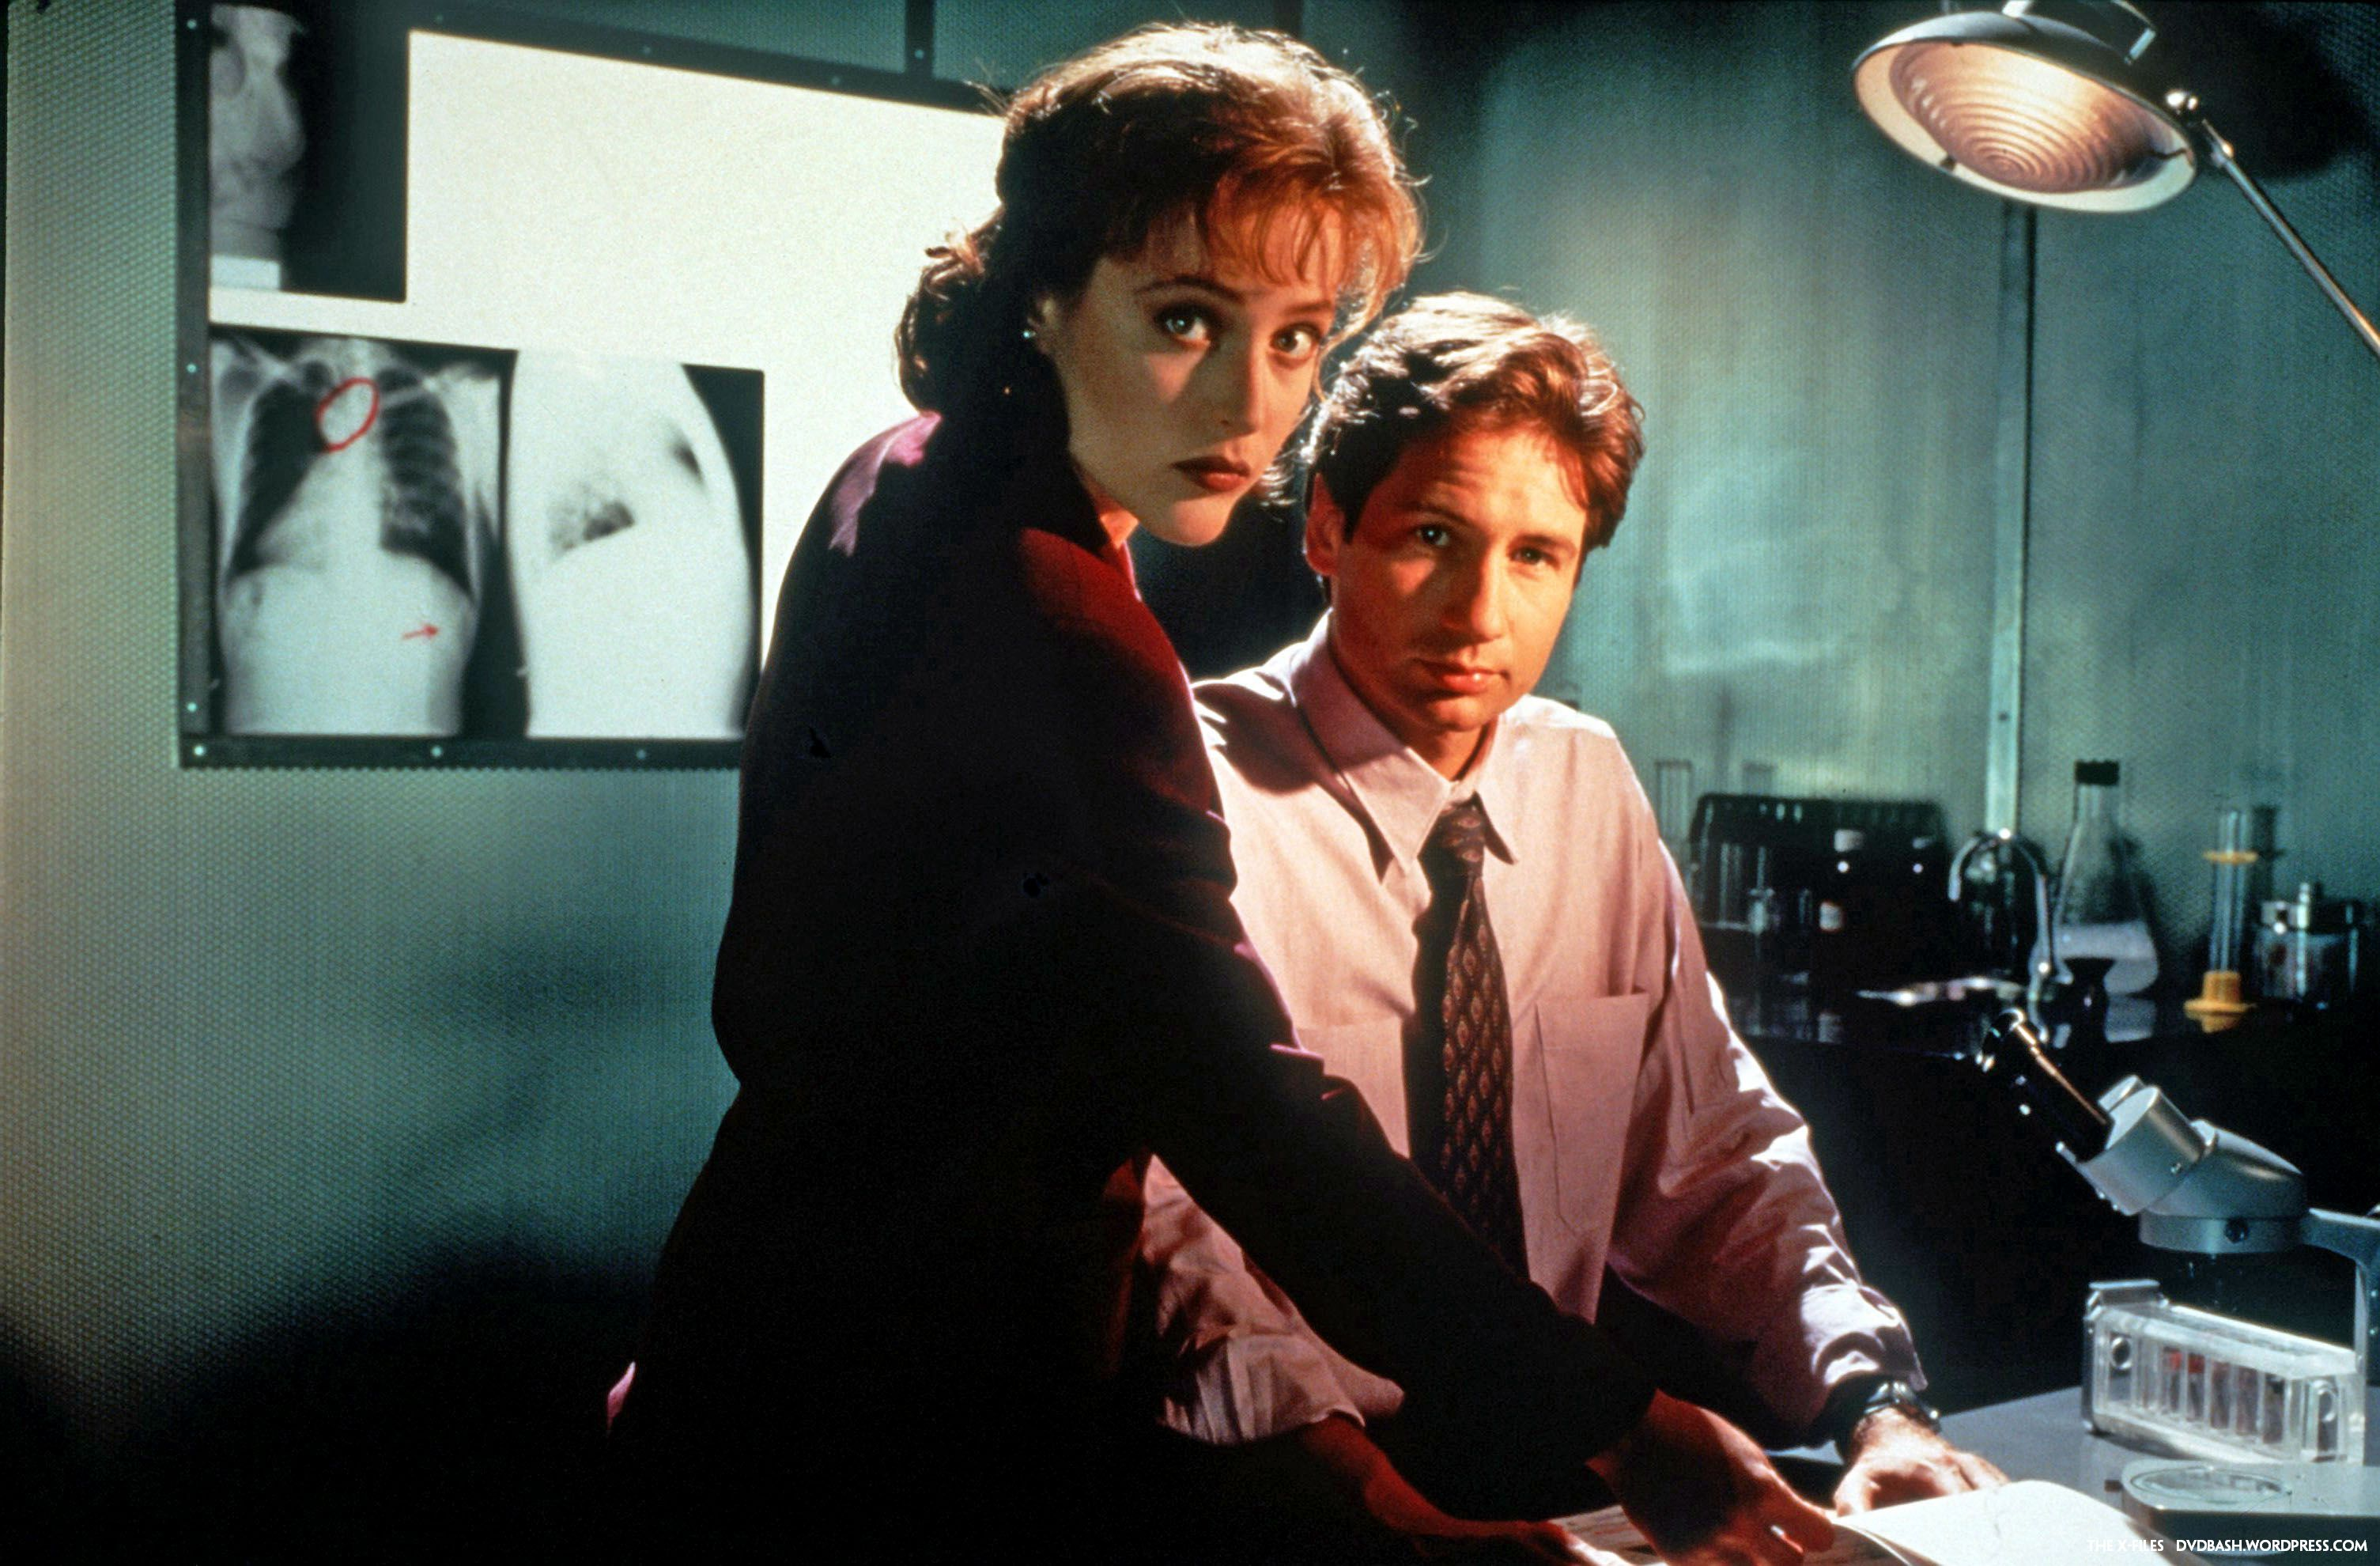 Amanda Tapping X Files the x-files gallery season 1 | dvdbash